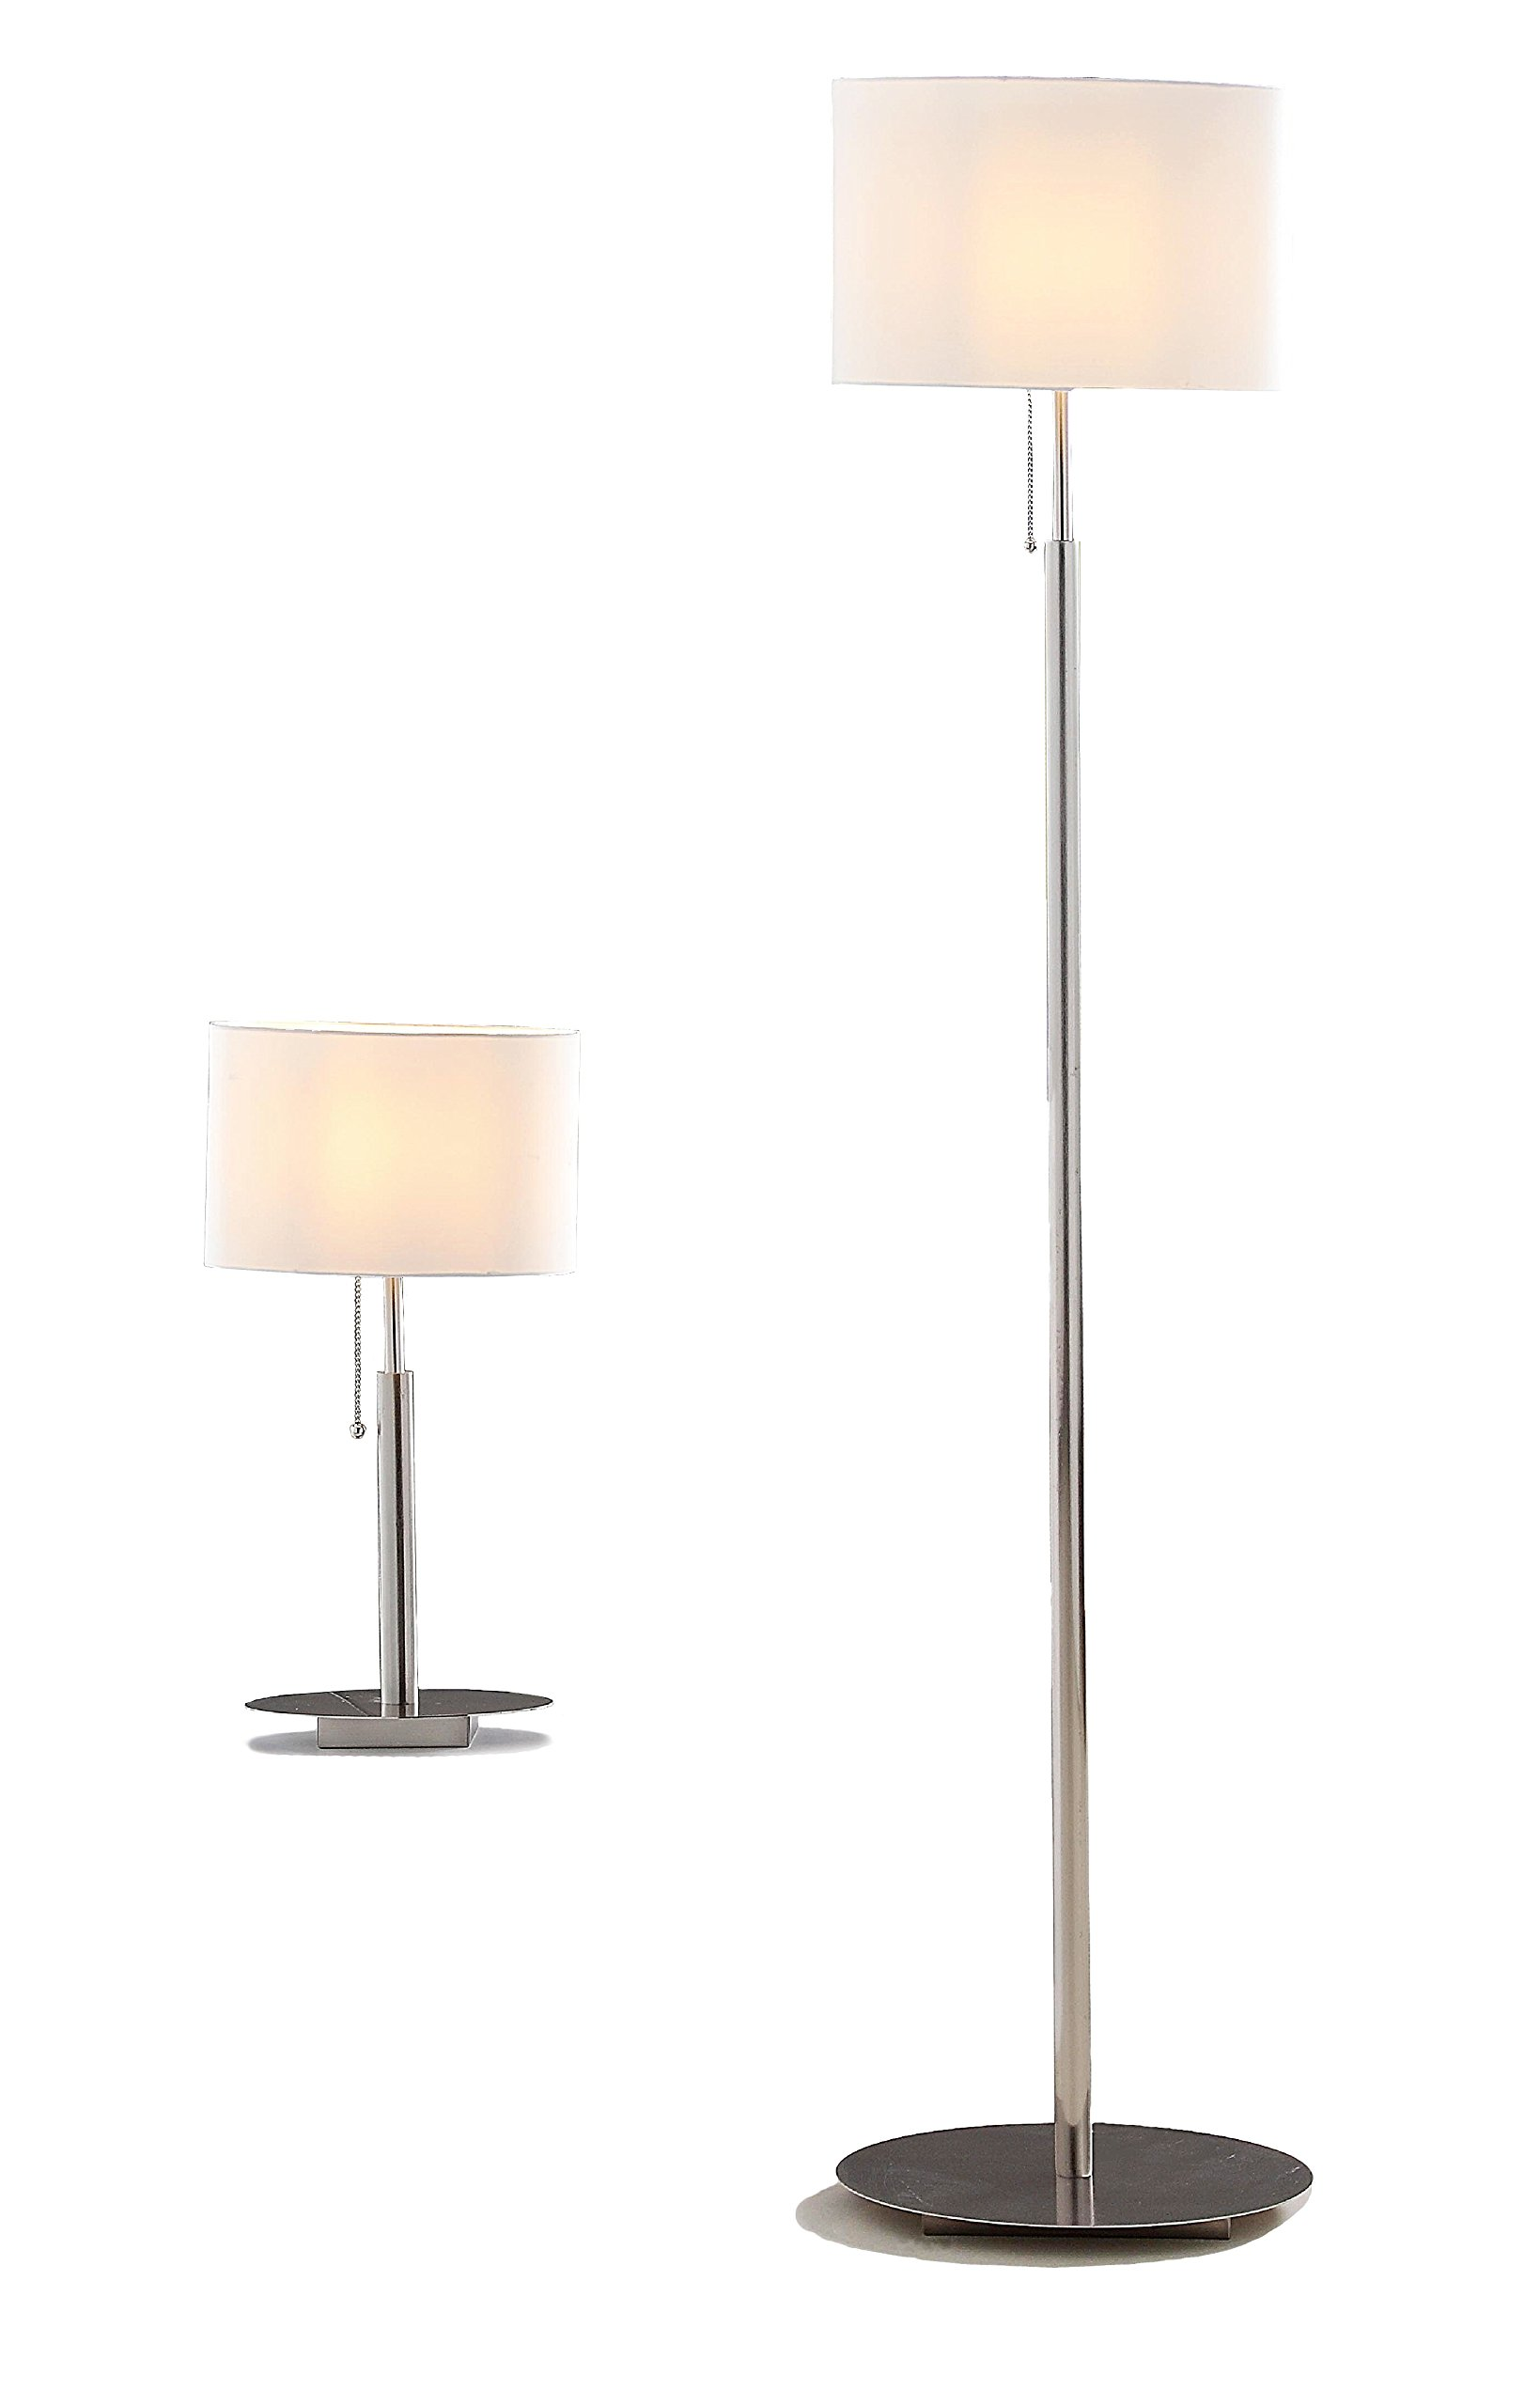 Artiva USA A4031017MXW Modern, Contemporary European ''AUDREY'' Slim Oval Design Brushed Steel Table and Floor Lamp Set, 64''/21''/25'', Brushed Steel